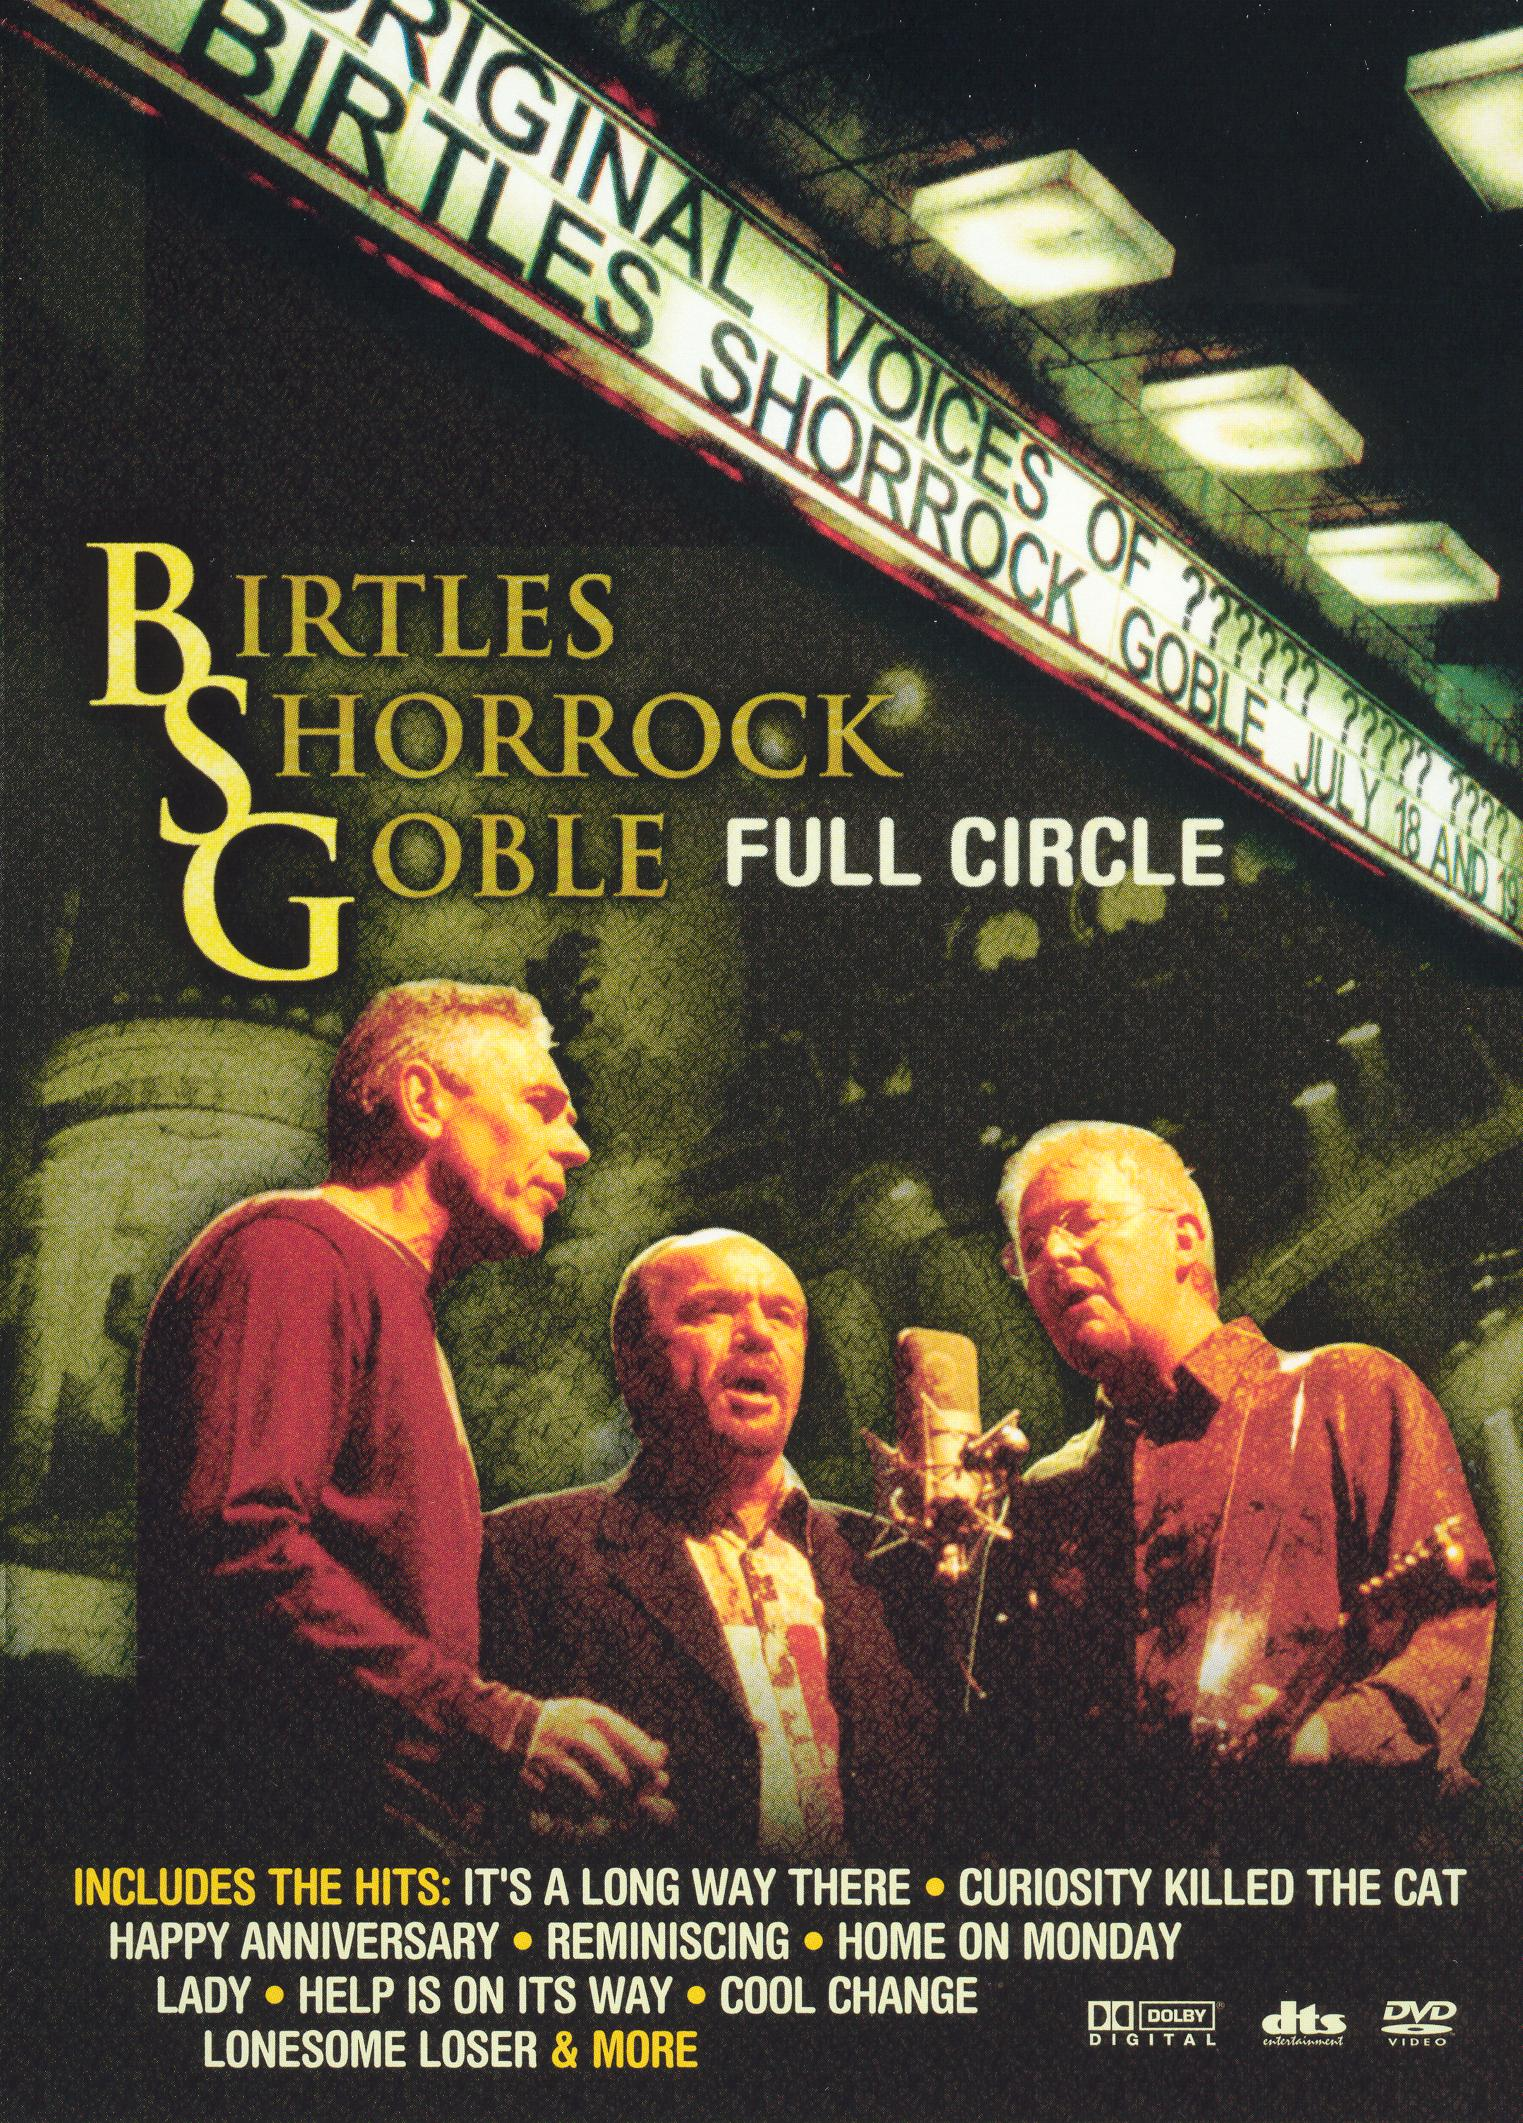 Birtles Shorrock Goble: Full Circle